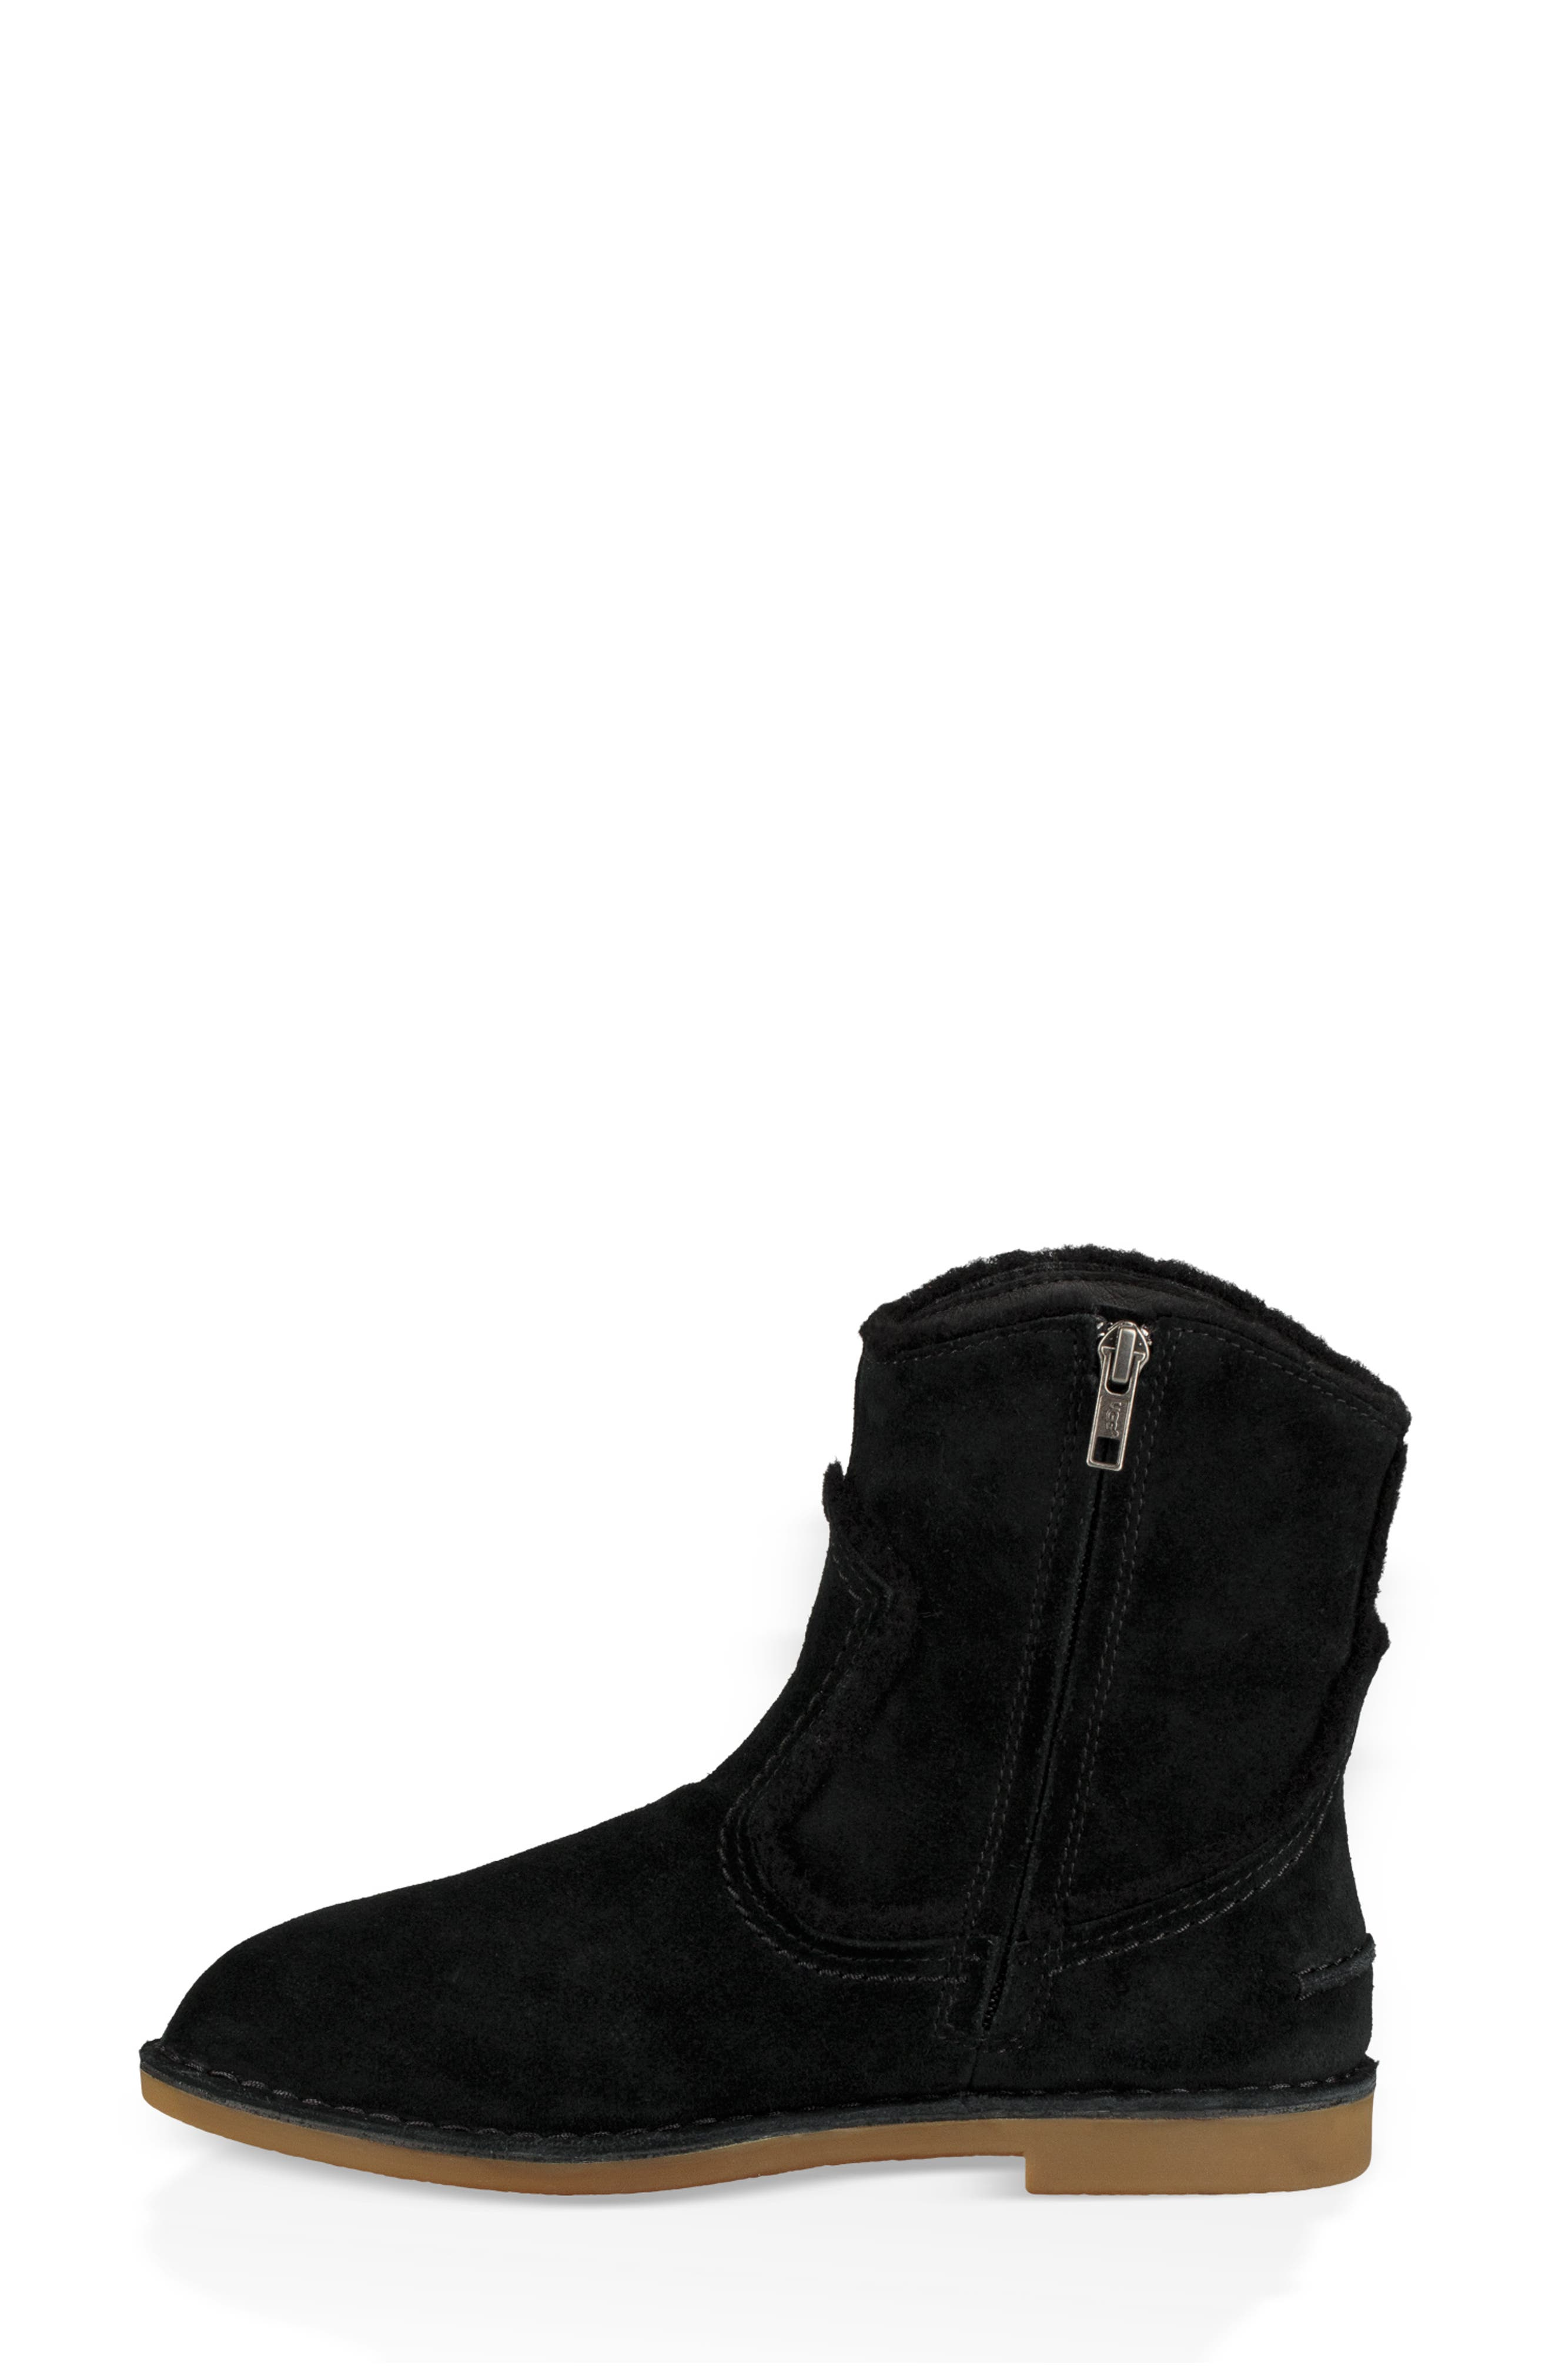 Catica Boot,                             Alternate thumbnail 6, color,                             BLACK SUEDE